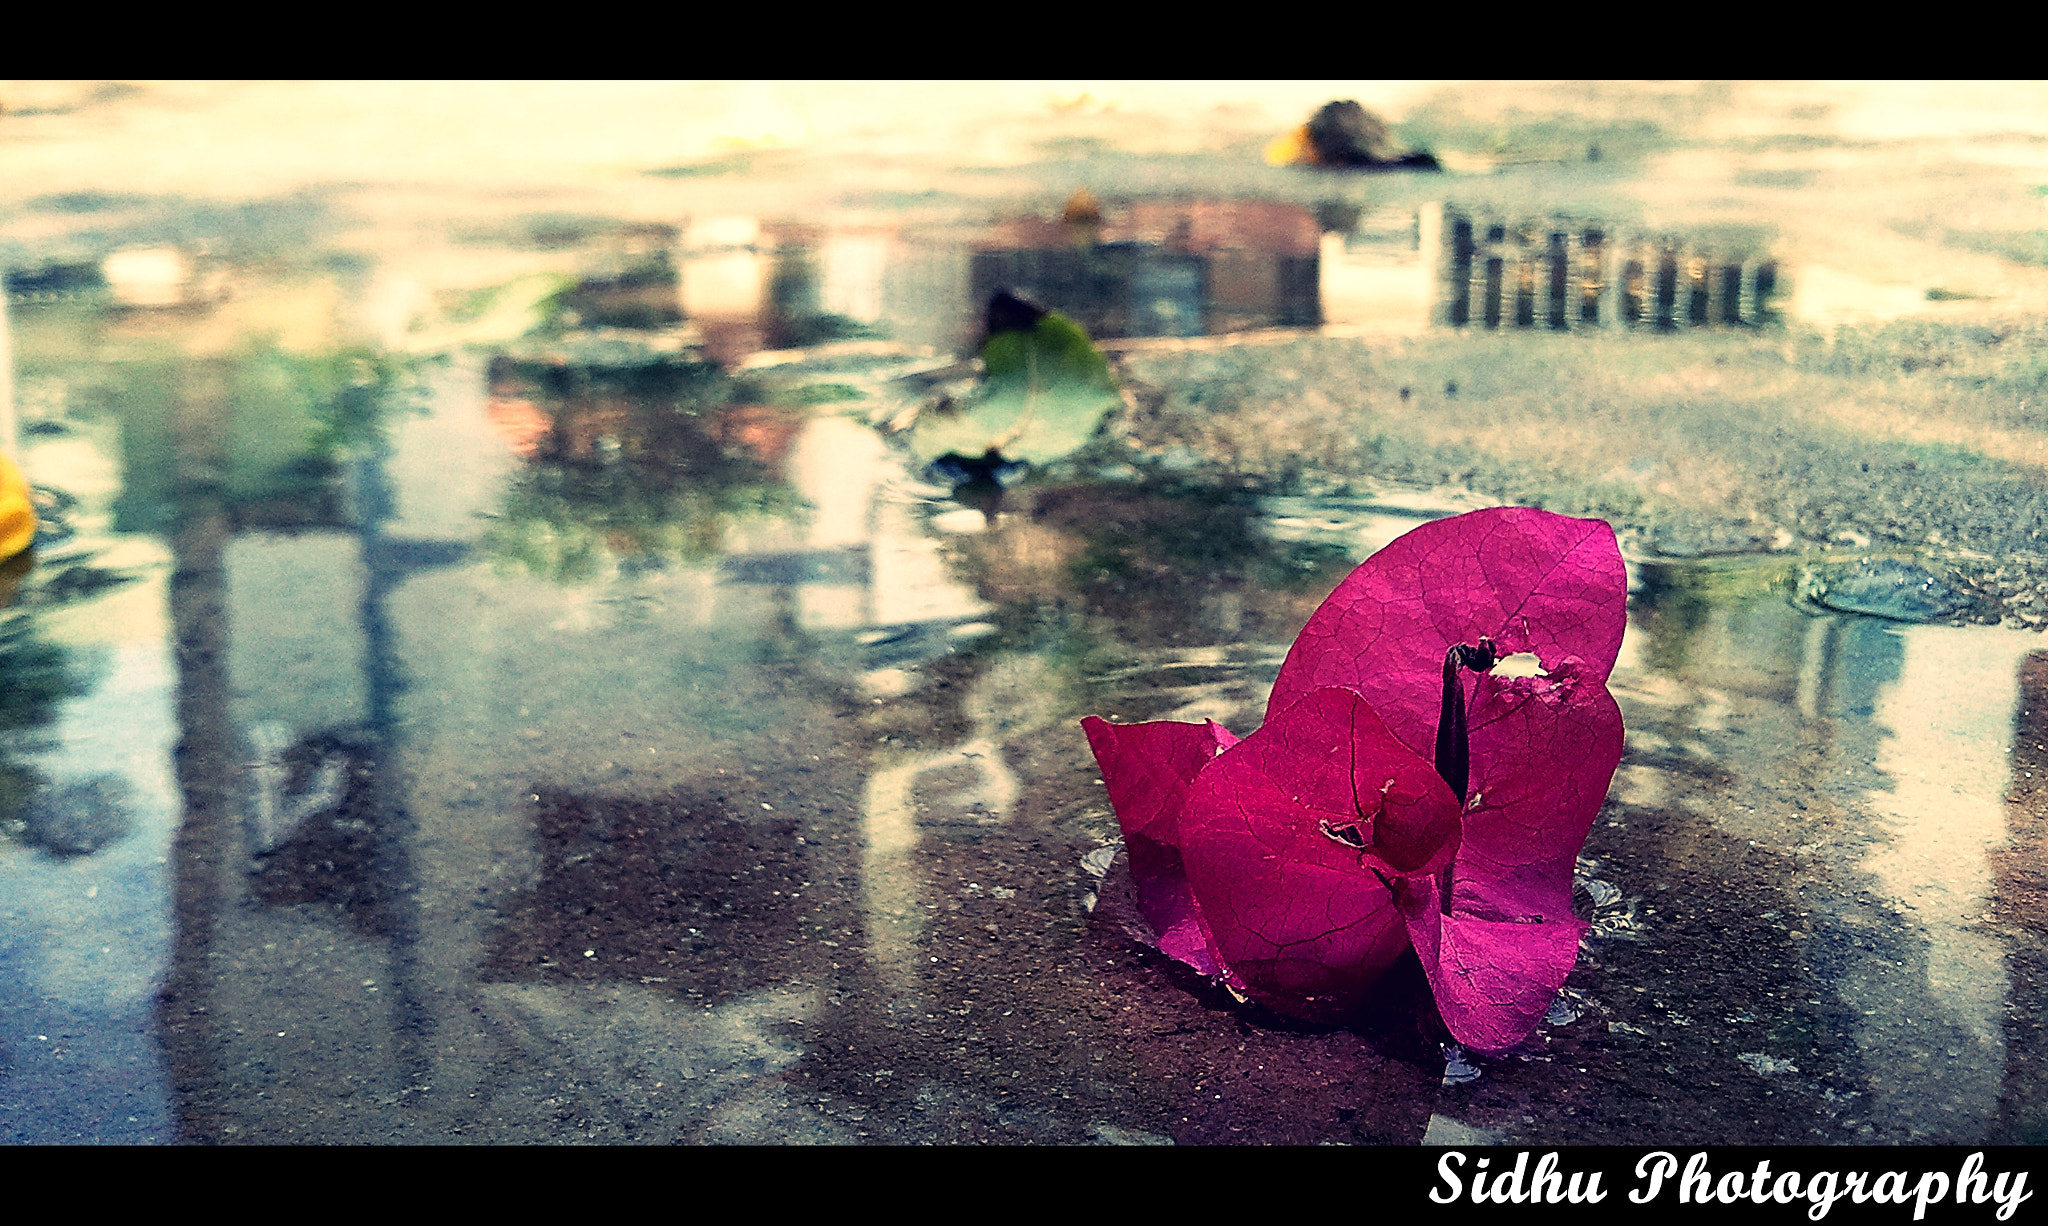 Photograph Fallen Flower by Arun Siddharth on 500px